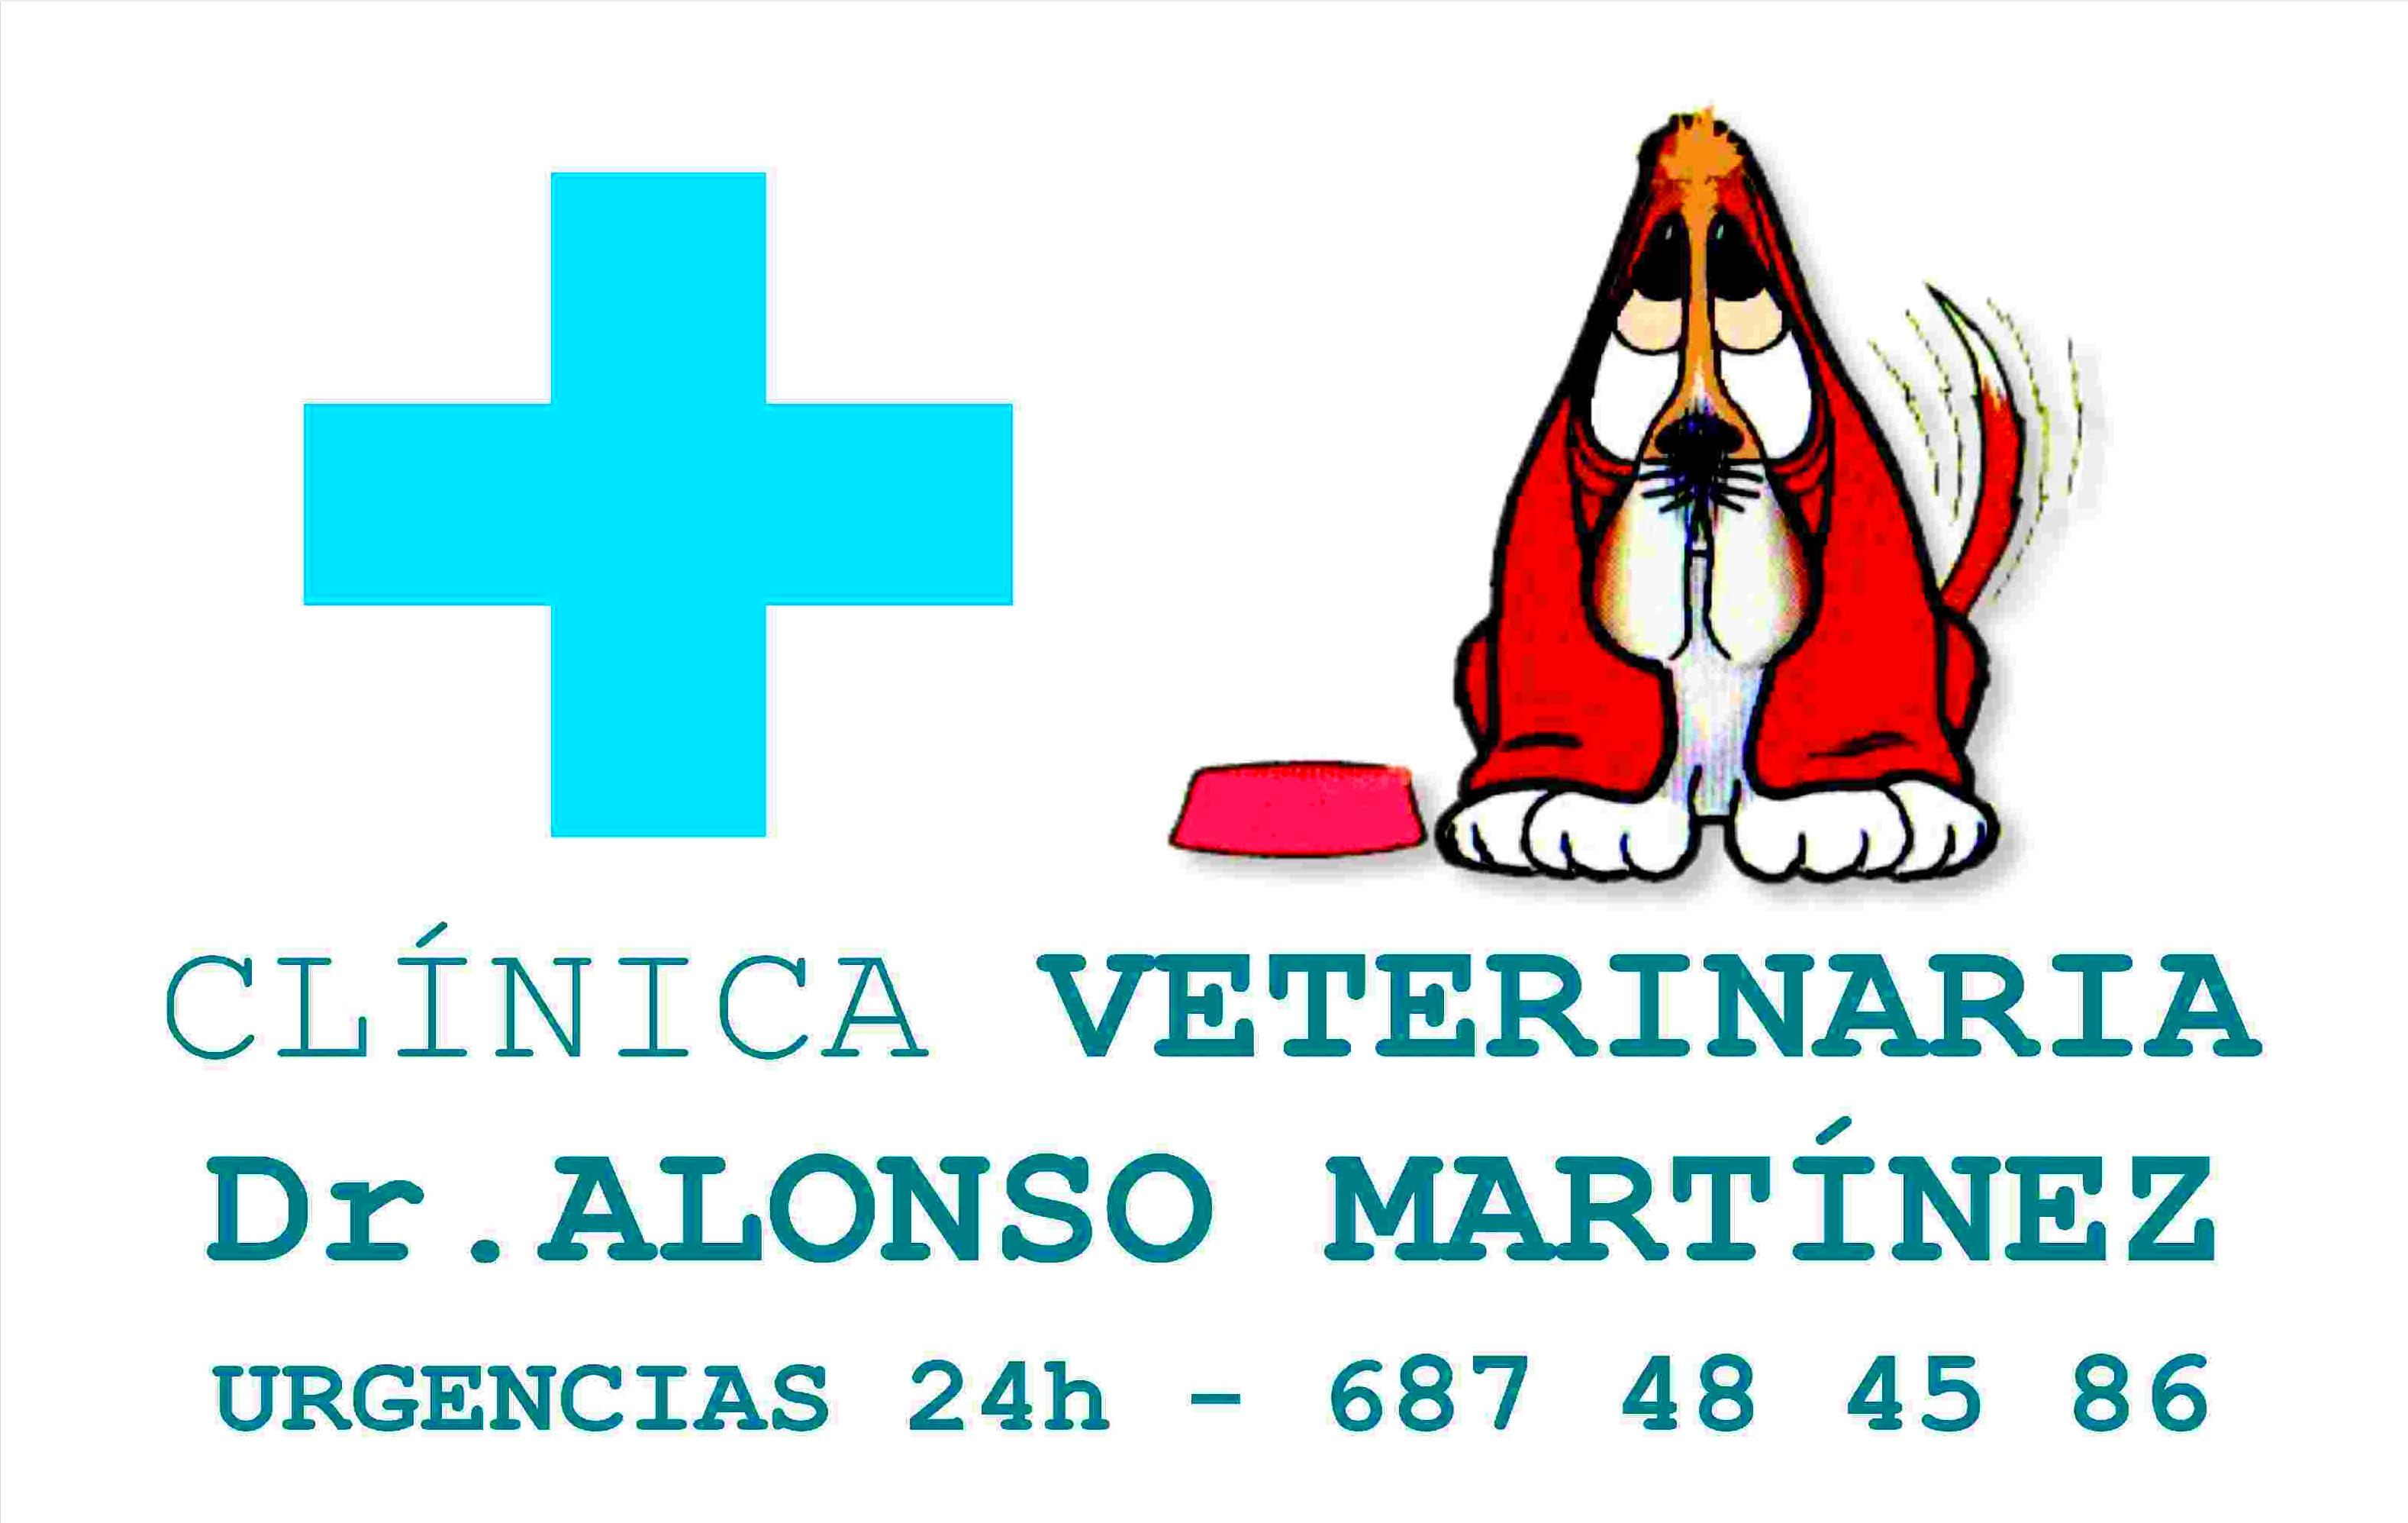 CLINICA VETERINARIA DR.ALONSO MARTINEZ,URGENCIAS 24 HORAS 687484586